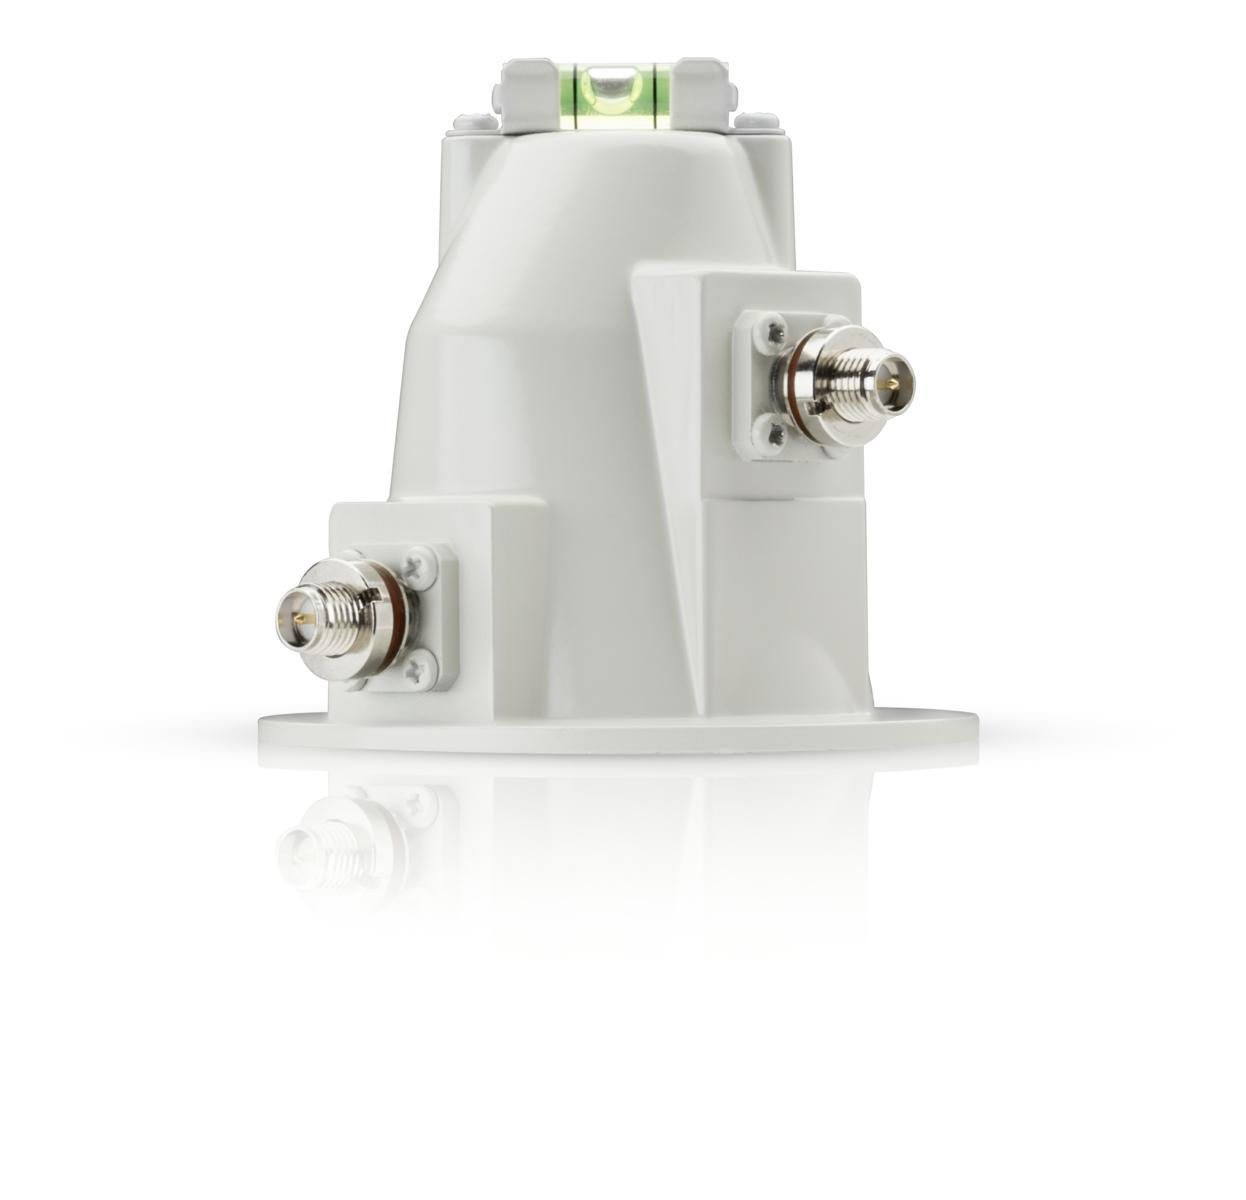 SICE Distributore Ufficiale  airFiber WIRELESS BACKHAUL airFiberX Conversion Kit5GHz Slant 45 | AF-5G-OMT-S45